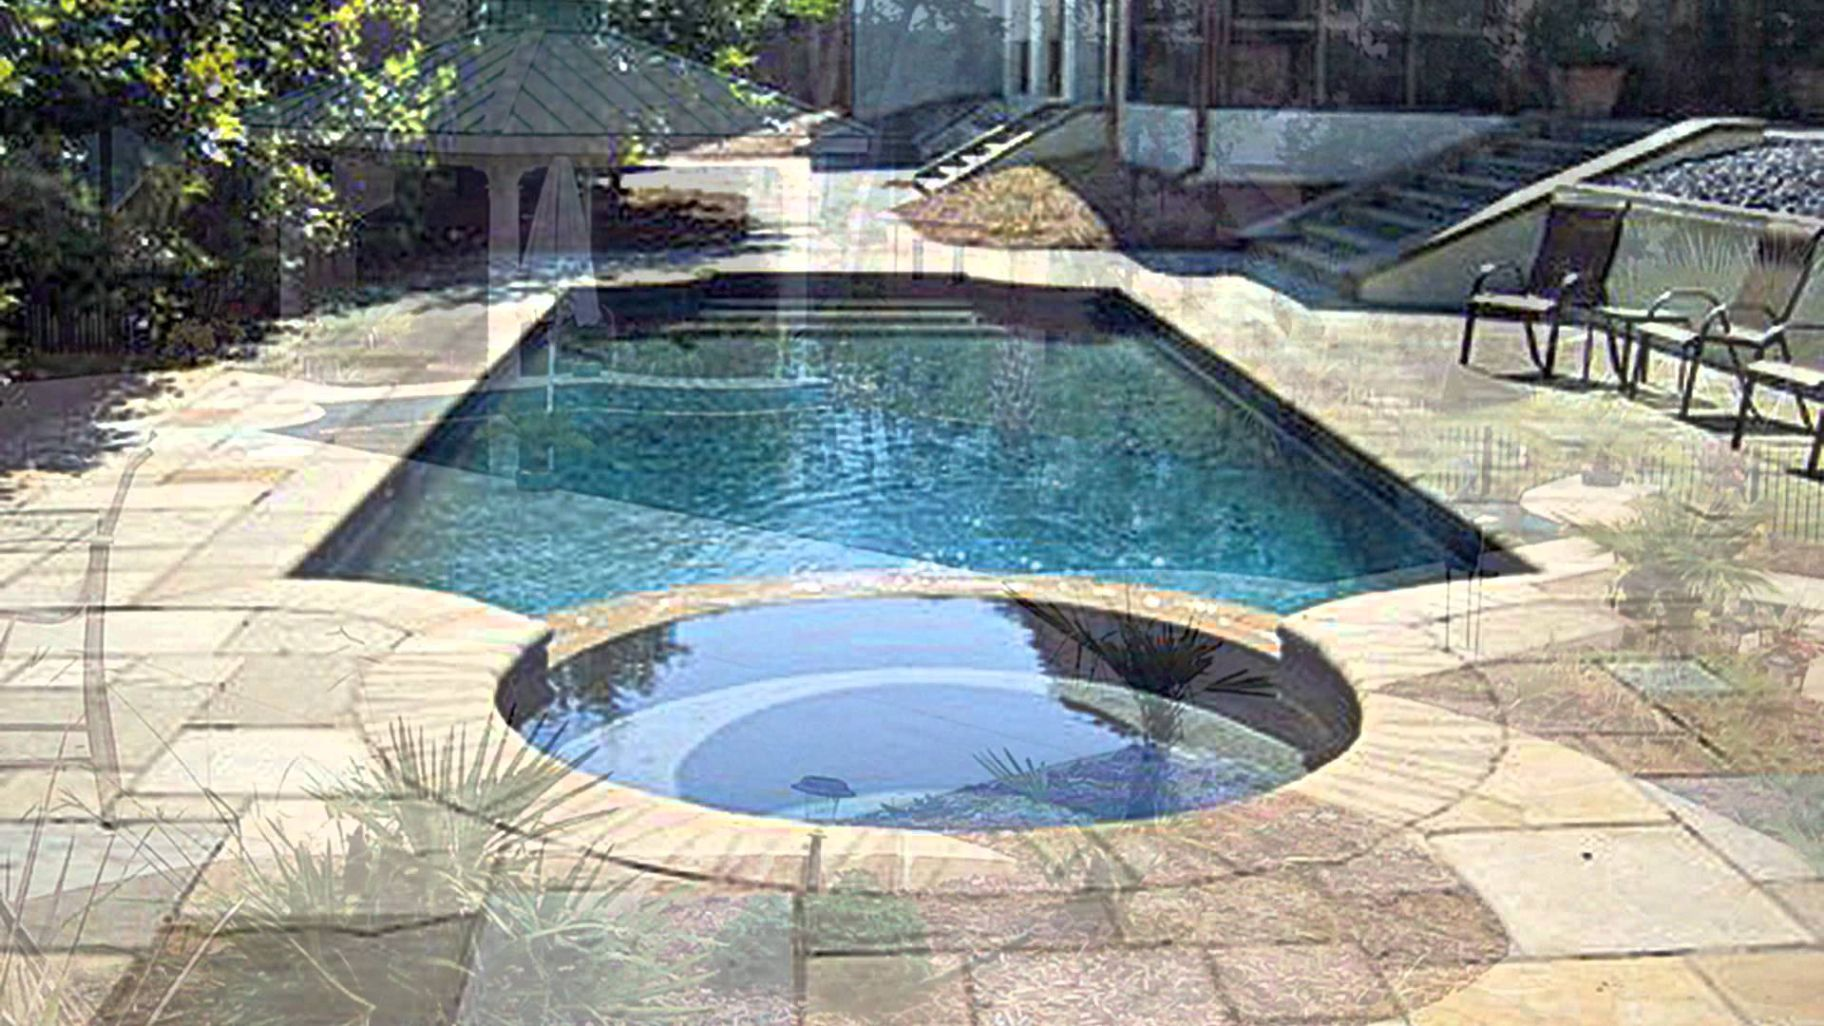 Breath taking grecian style pool pictures for Roman style pool design